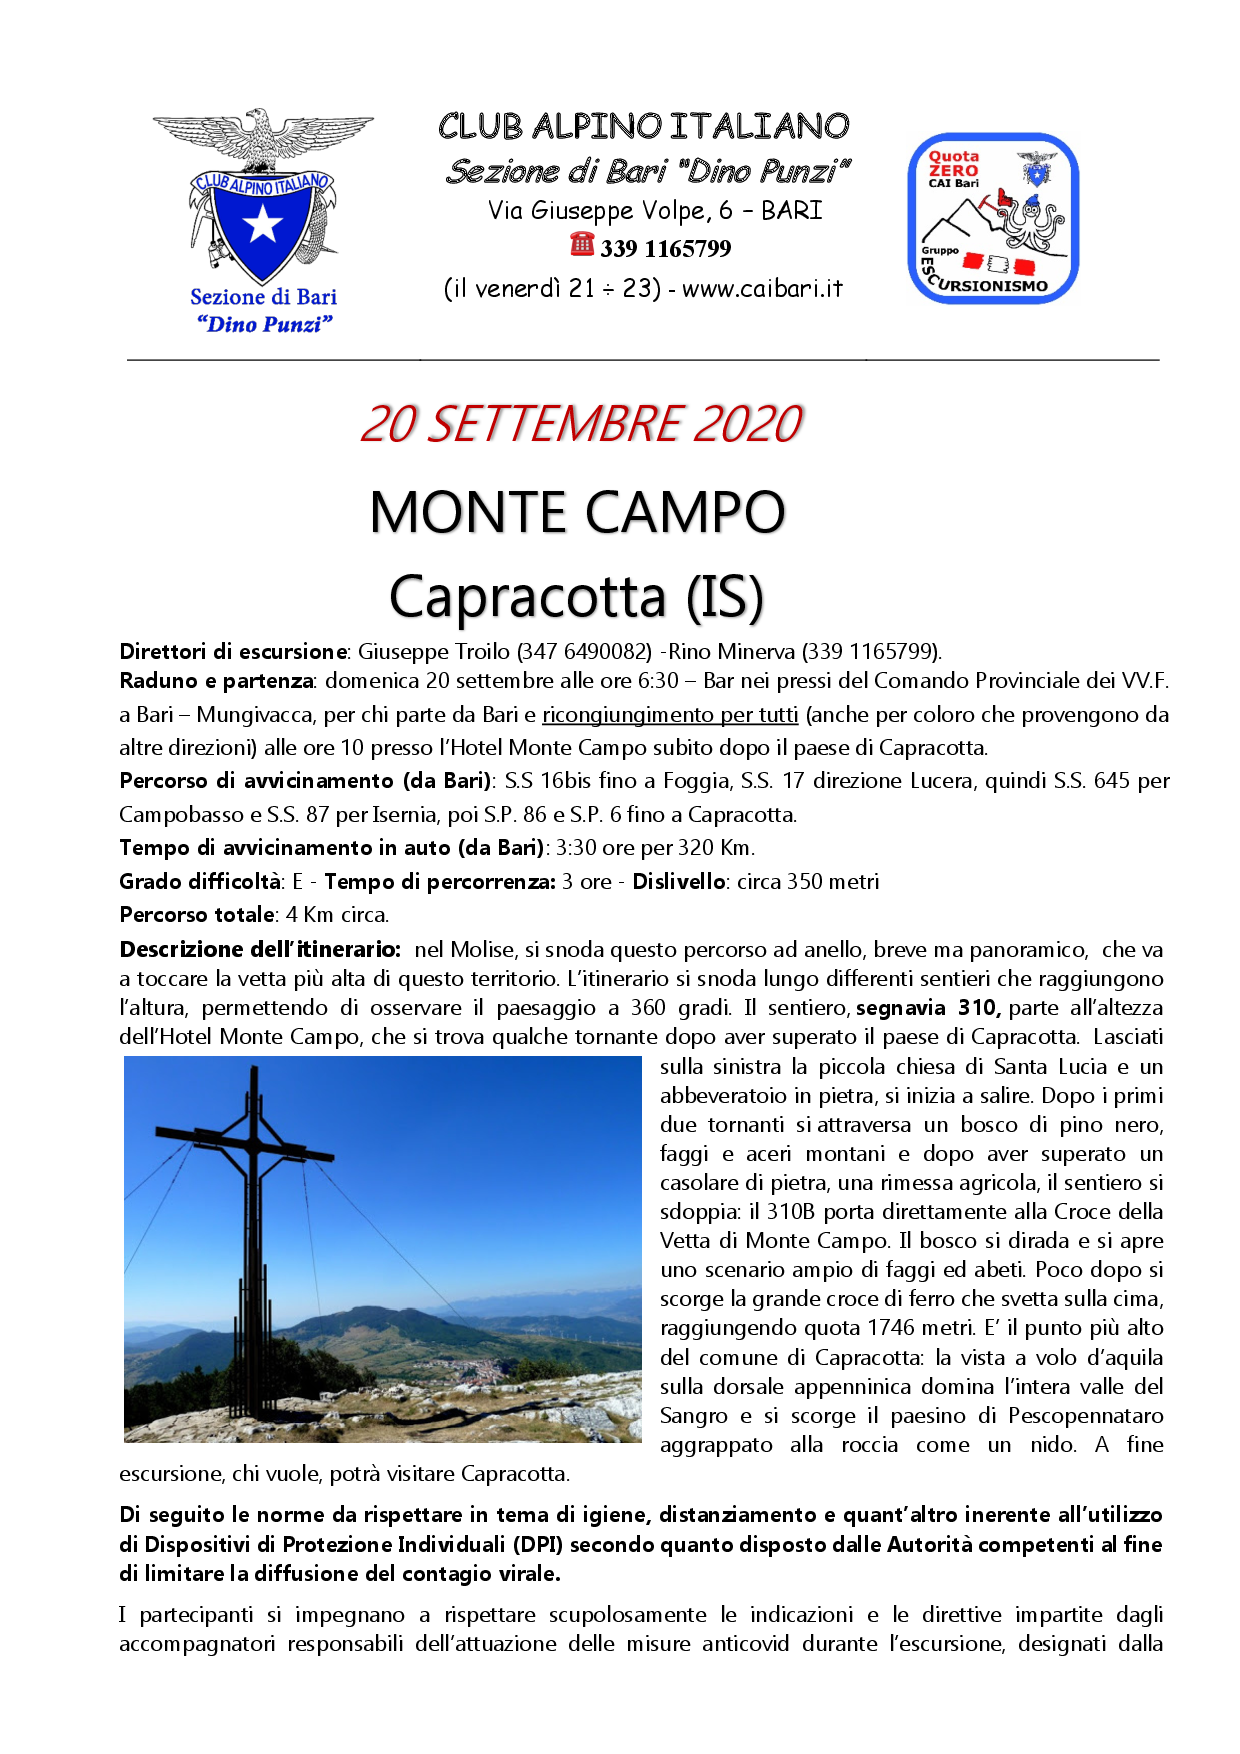 MONTE CAMPO  Capracotta (IS)